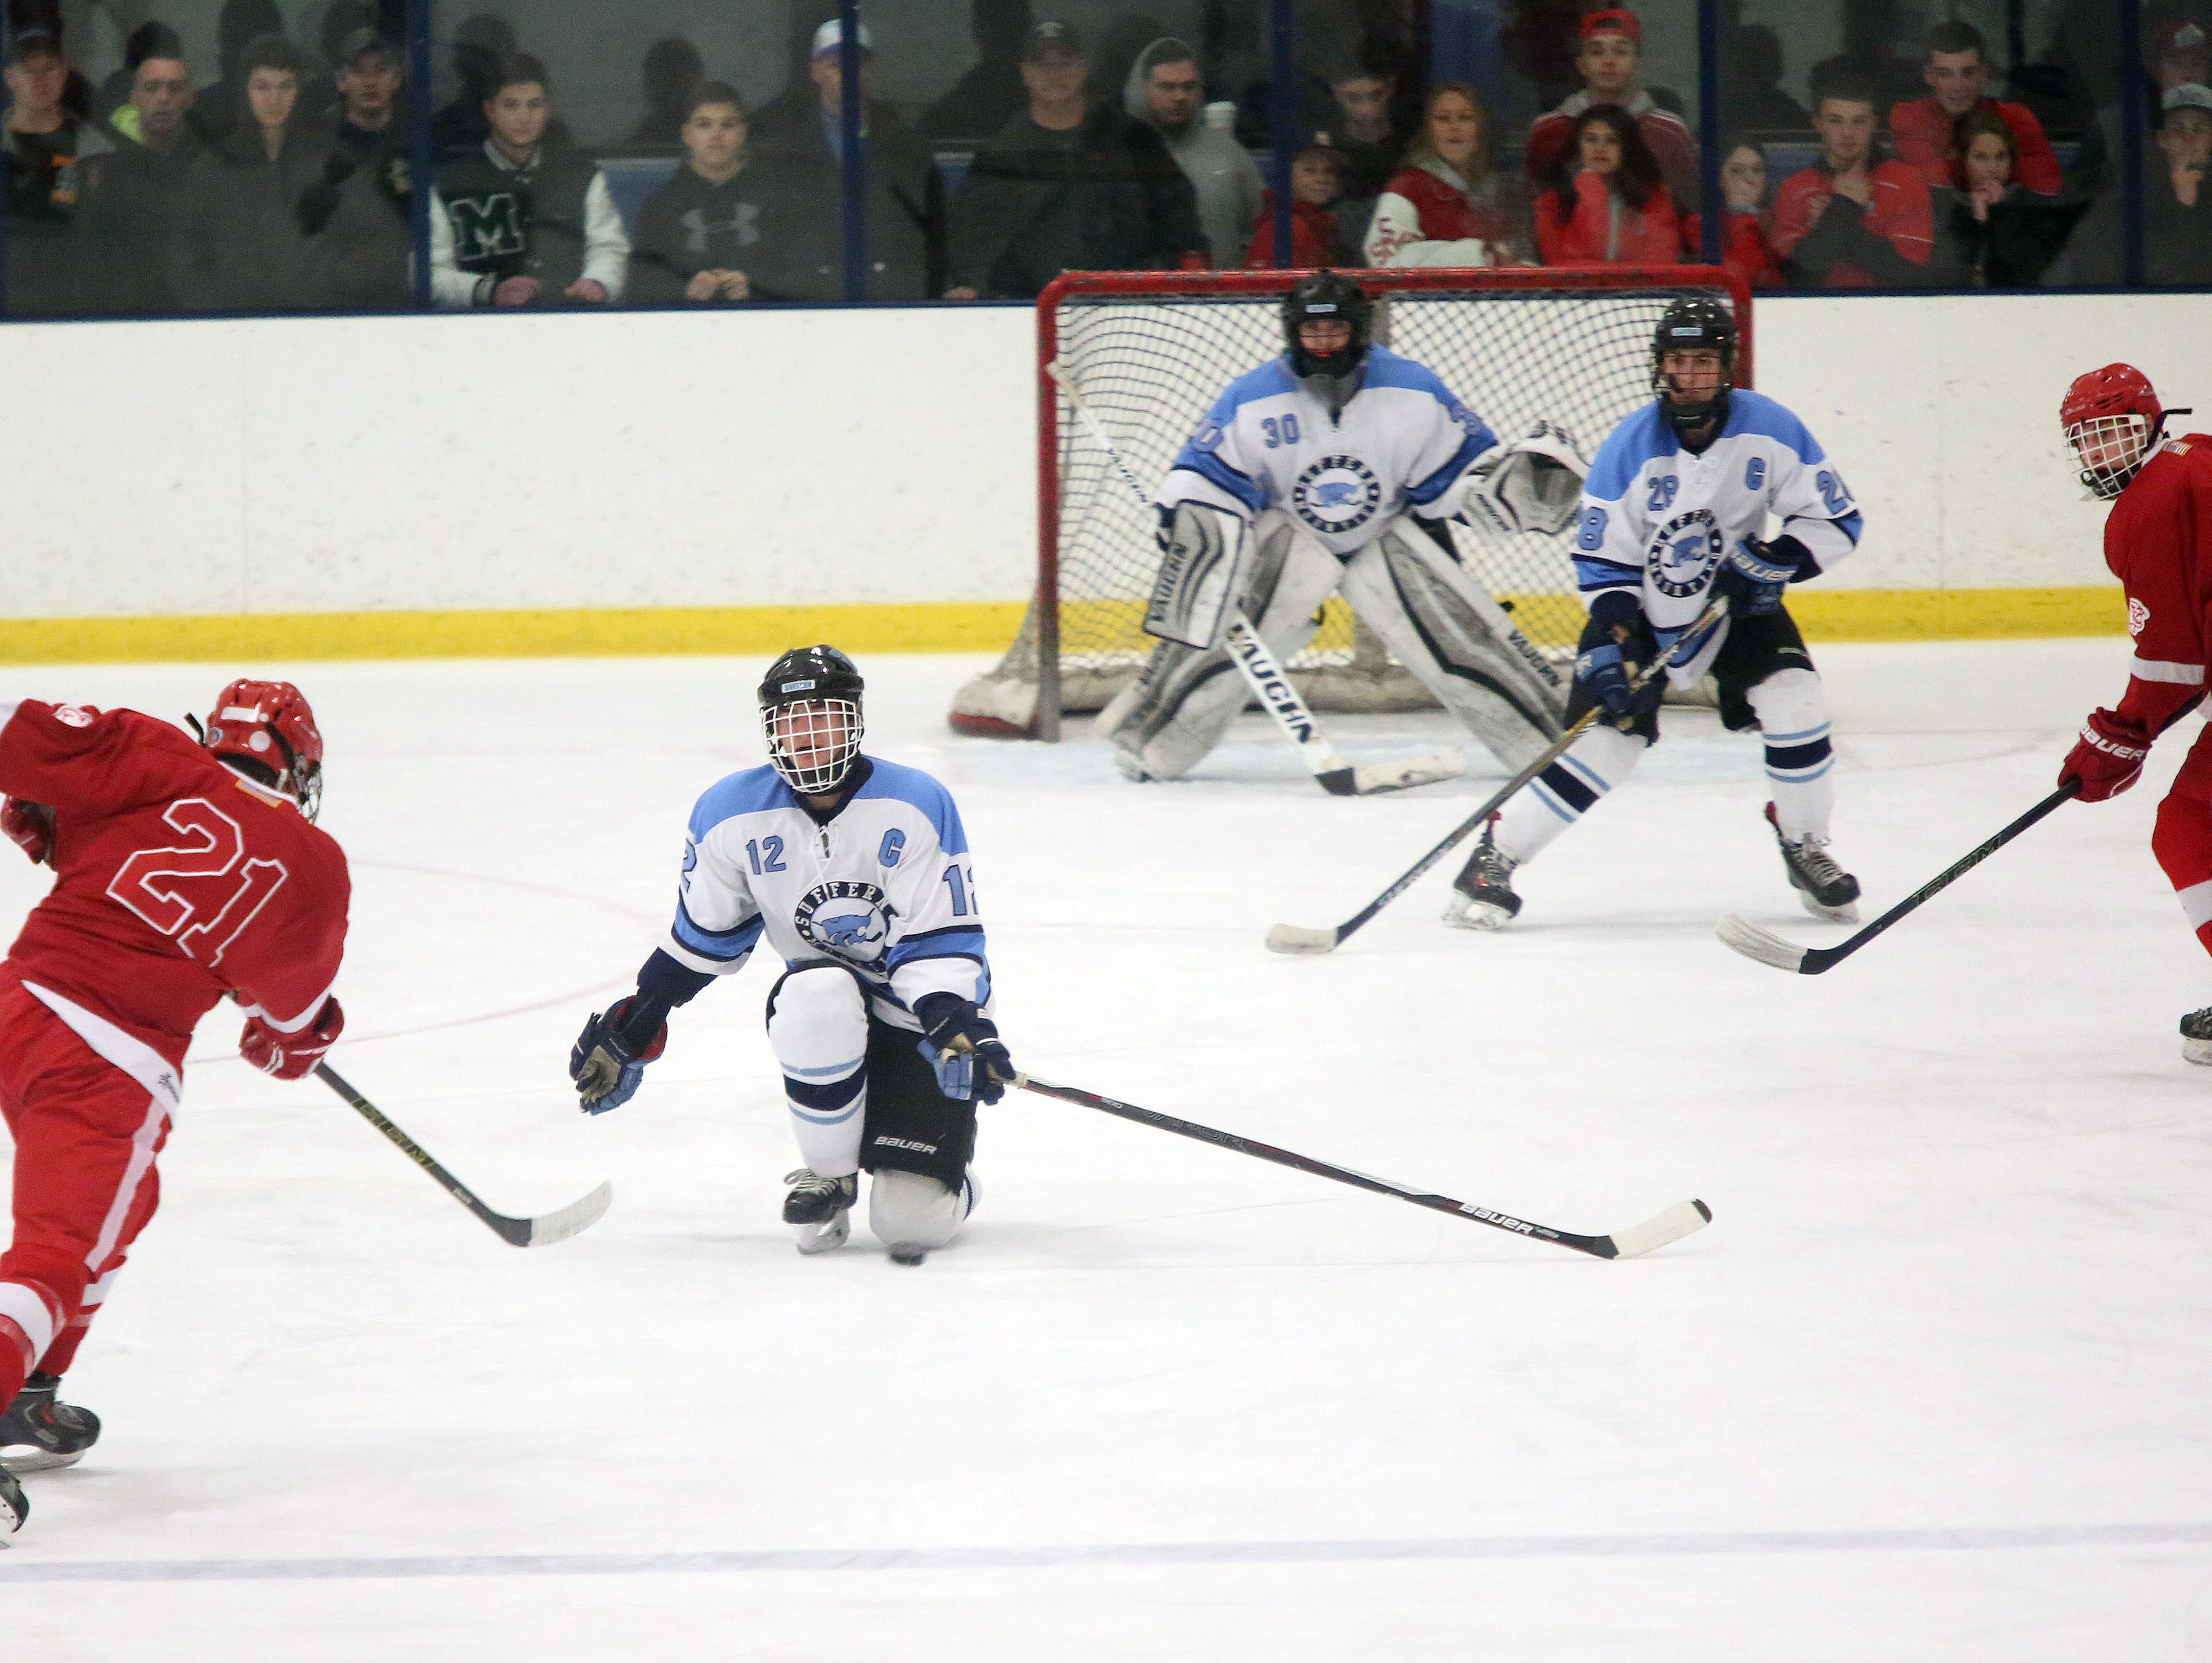 Suffern plays North Rockland in a Section 1 Division 1 semifinal of hockey Sport-O-Rama in Monsey at Feb. 26, 2016.